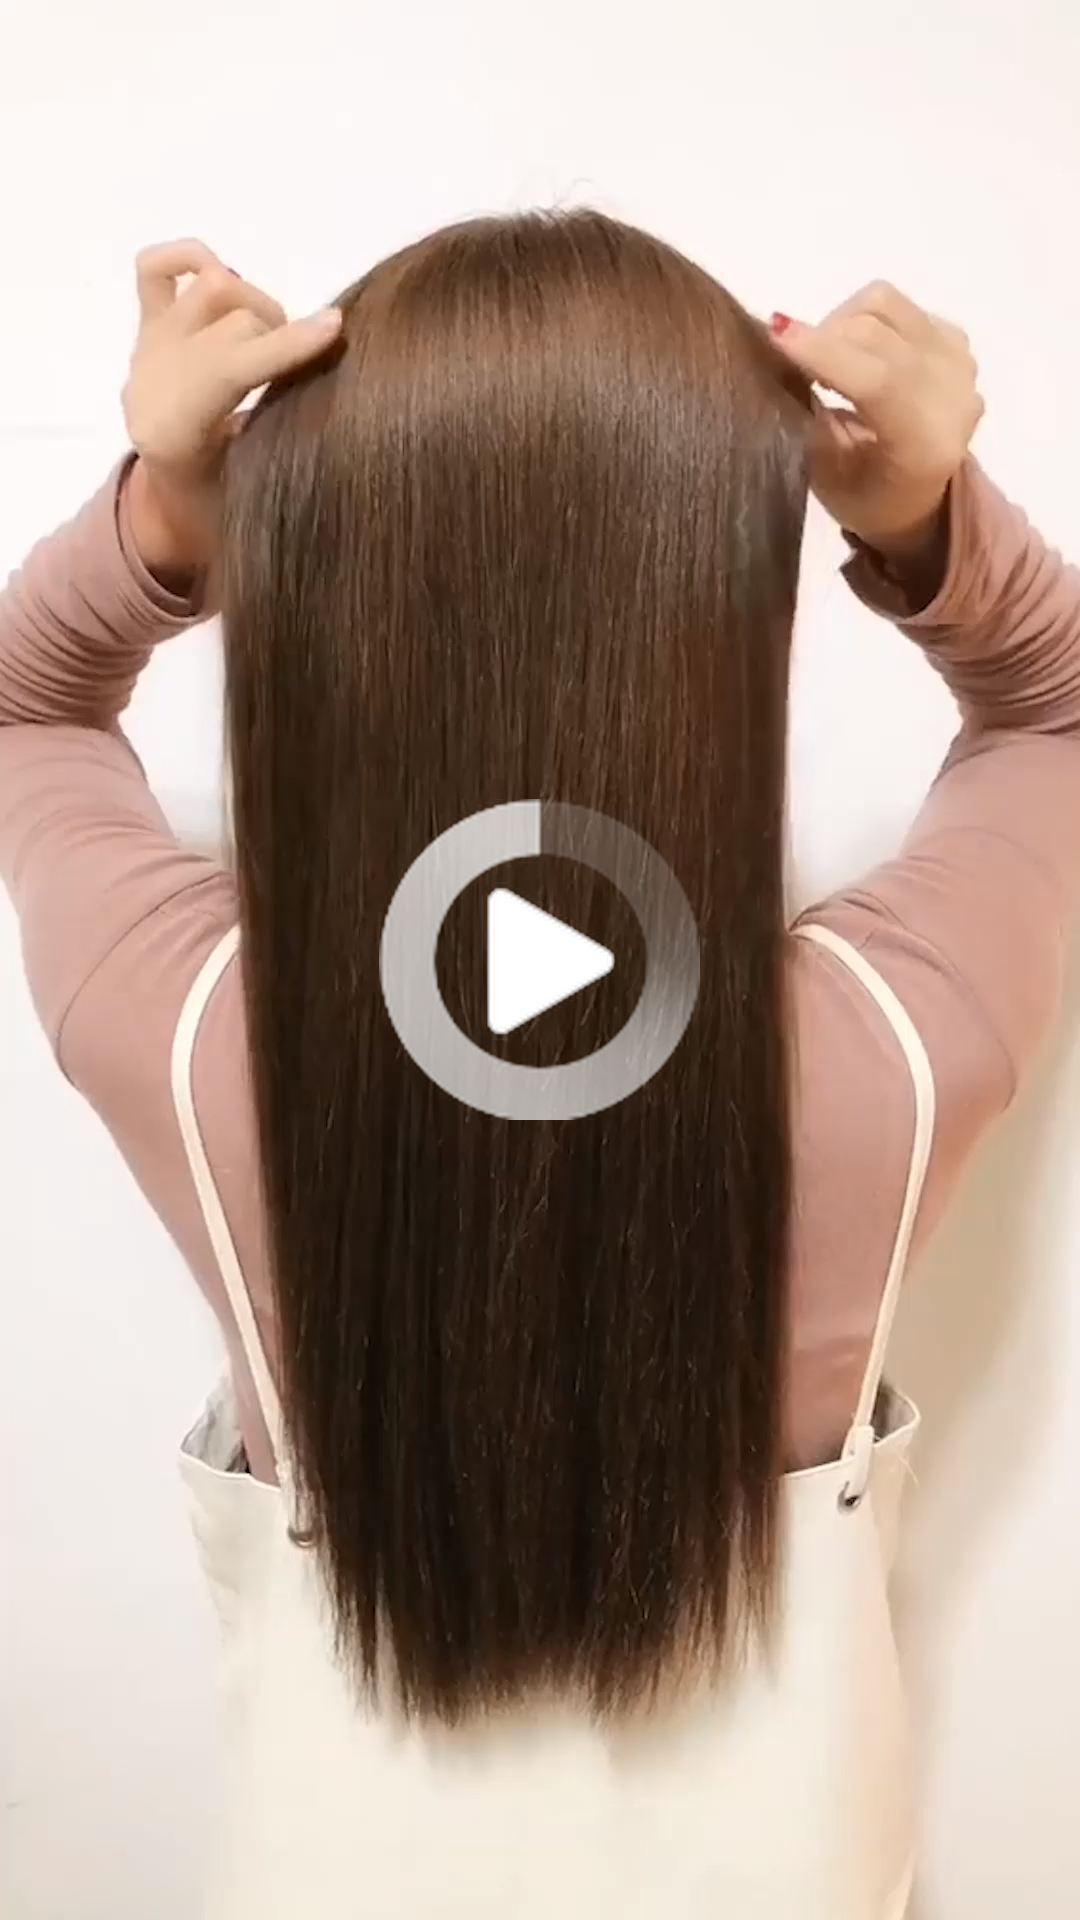 Hairstyle Tutorials For Long Hair New Hairstyle Videos 2019 Easy Quick Long Hairstyles Easy In 2020 Long Hair Styles Hair Tutorials Easy Medium Hair Styles